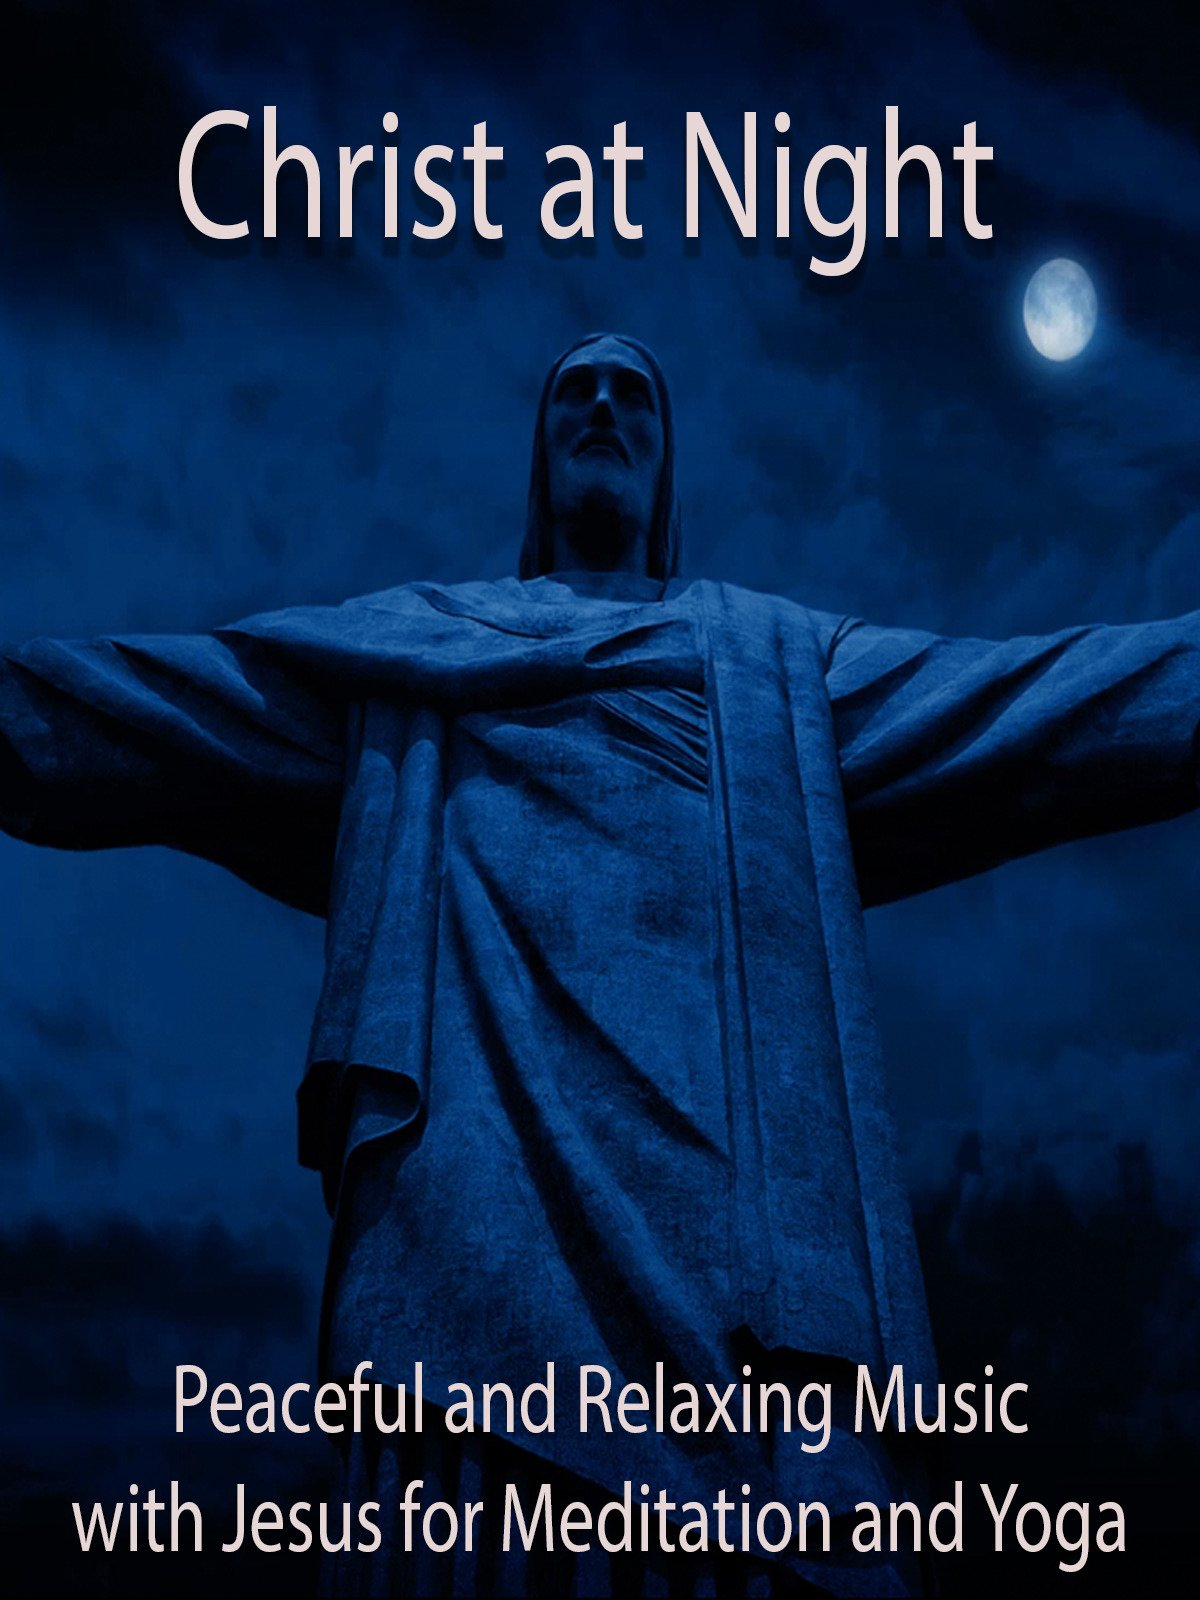 Christ at Night Peaceful and Relaxing Music with Jesus for Meditation and Yoga